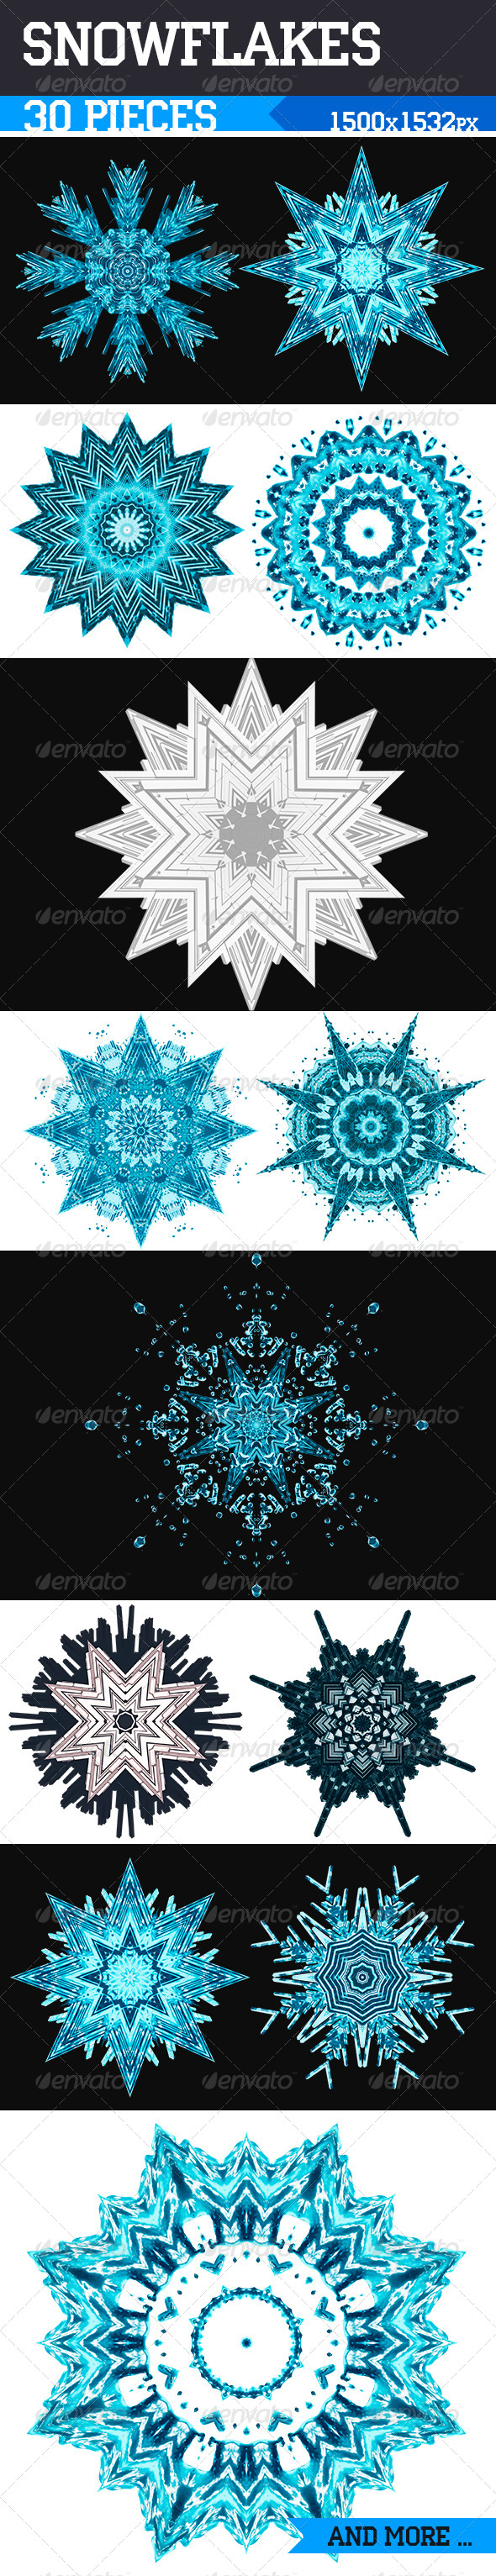 Snowflakes - Objects Illustrations